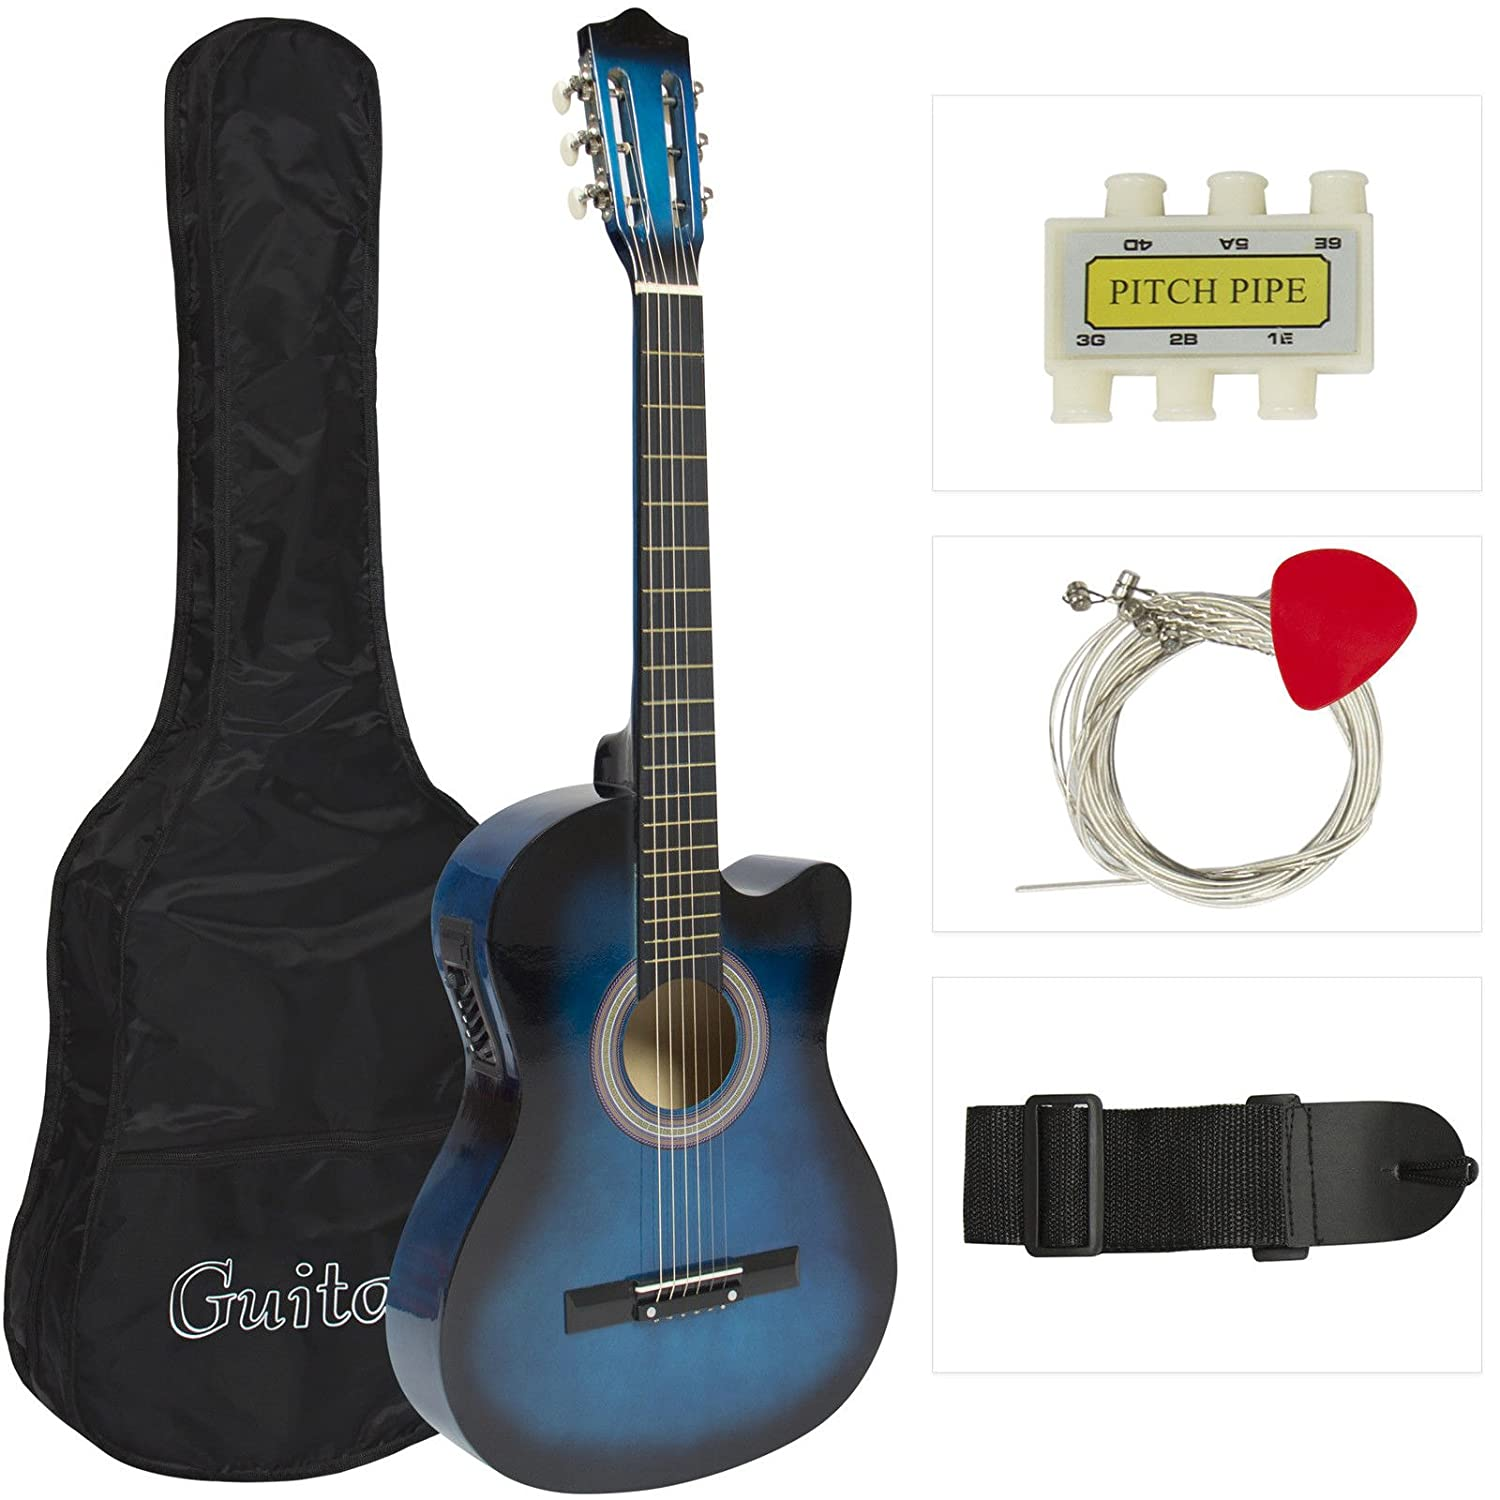 Polar Aurora Electric Acoustic Guitar Cutaway Design With Guitar Case, Strap Black New LoongStar Sup-0470